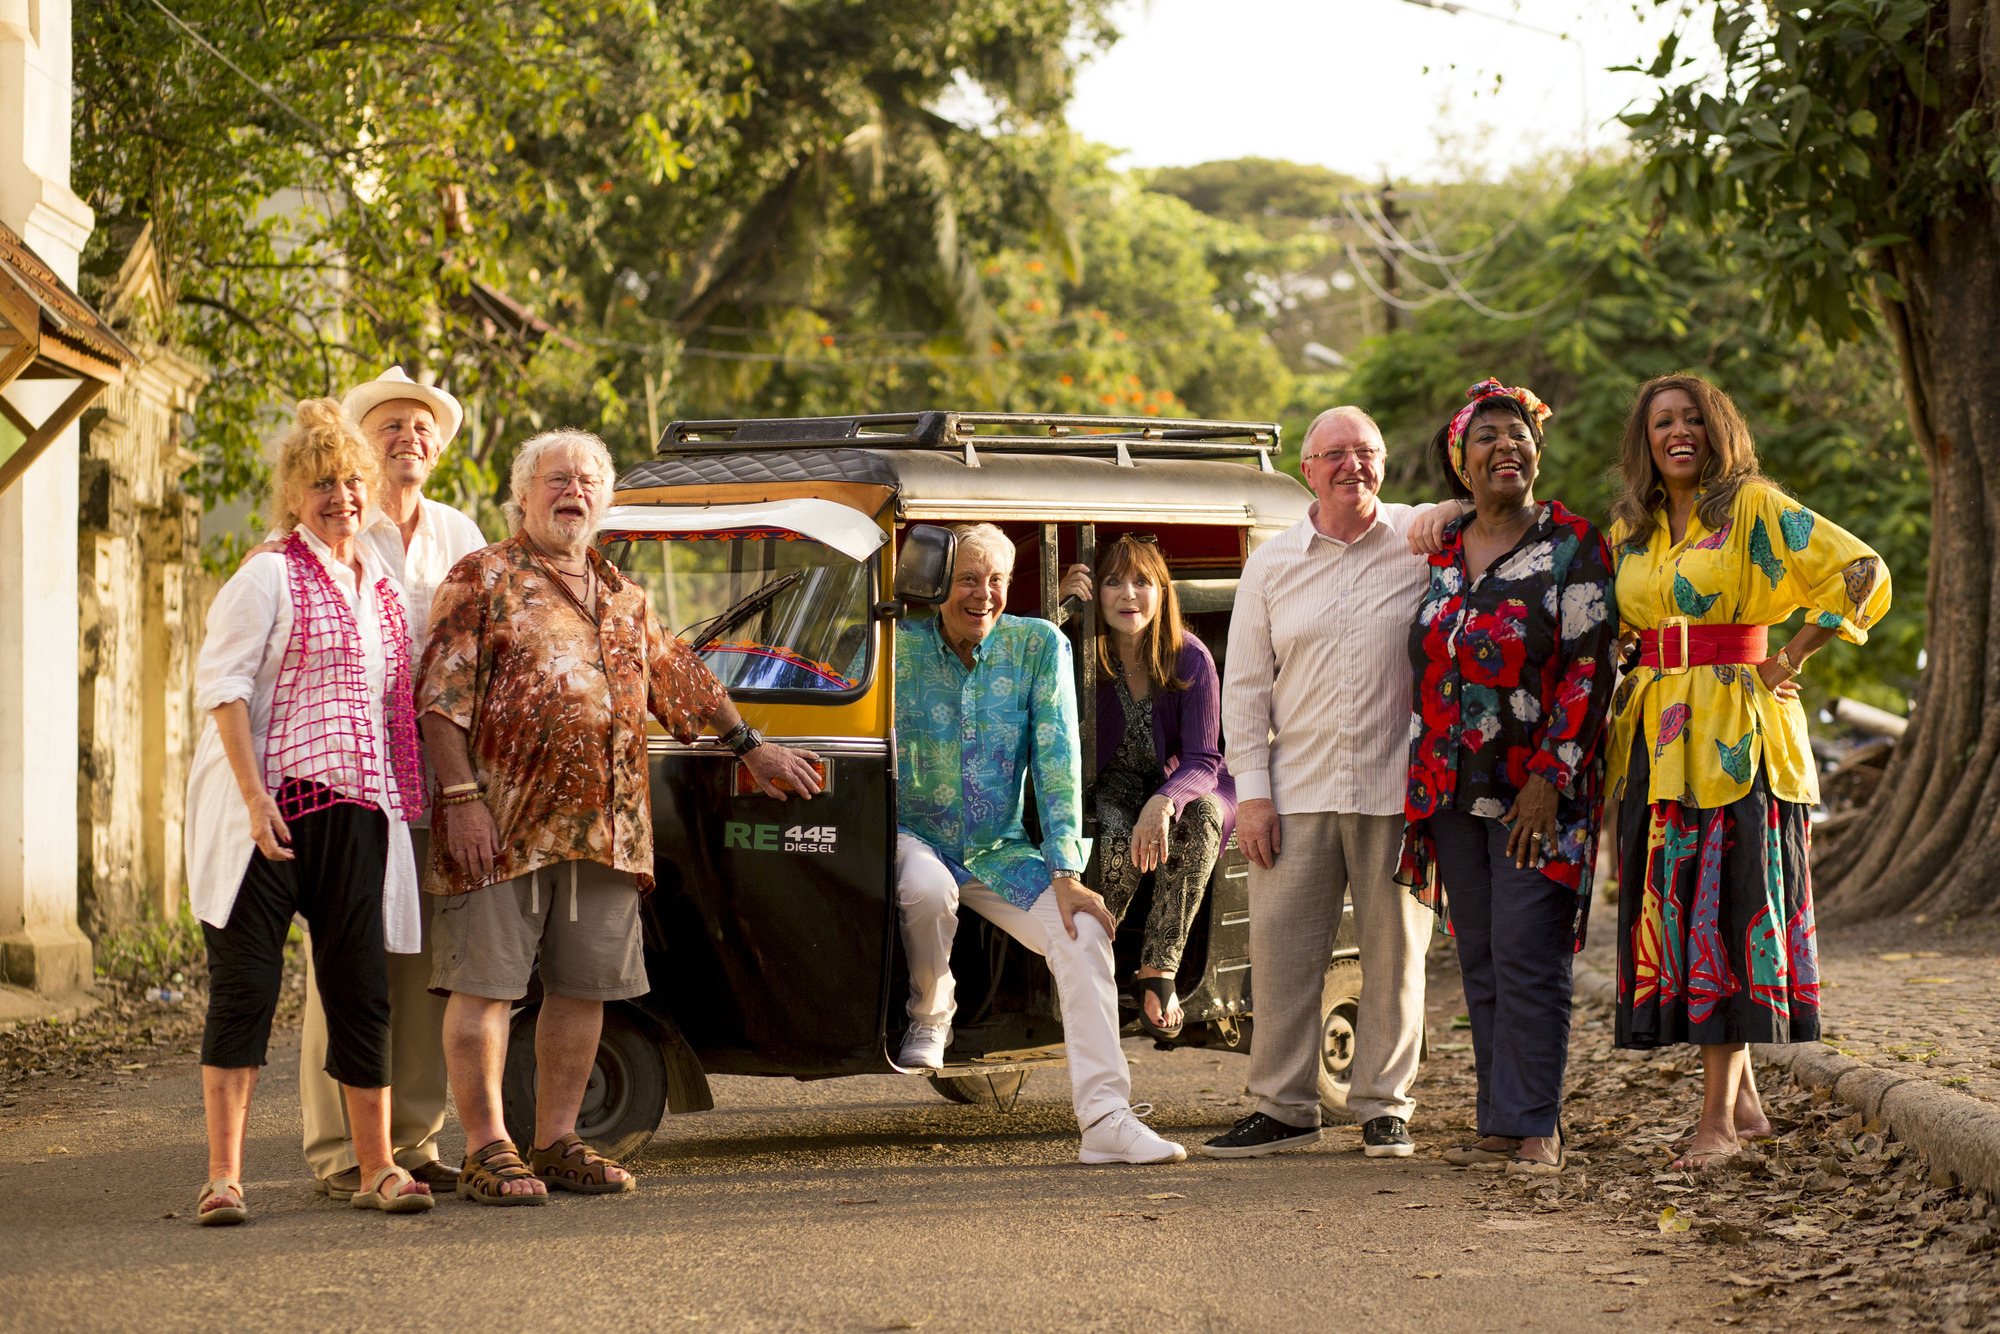 Programme Name: The Real Marigold Hotel S2 - TX: n/a - Episode: The Real Marigold Hotel S2 (No. n/a) - Picture Shows: Amanda Barrie, Paul Nicholas, Bill Oddie, Lionel Blair, Dr Miriam Stoppard, Rustie Lee, Dennis Taylor, Sheila Ferguson - (C) Papaya 2016 - Photographer: -